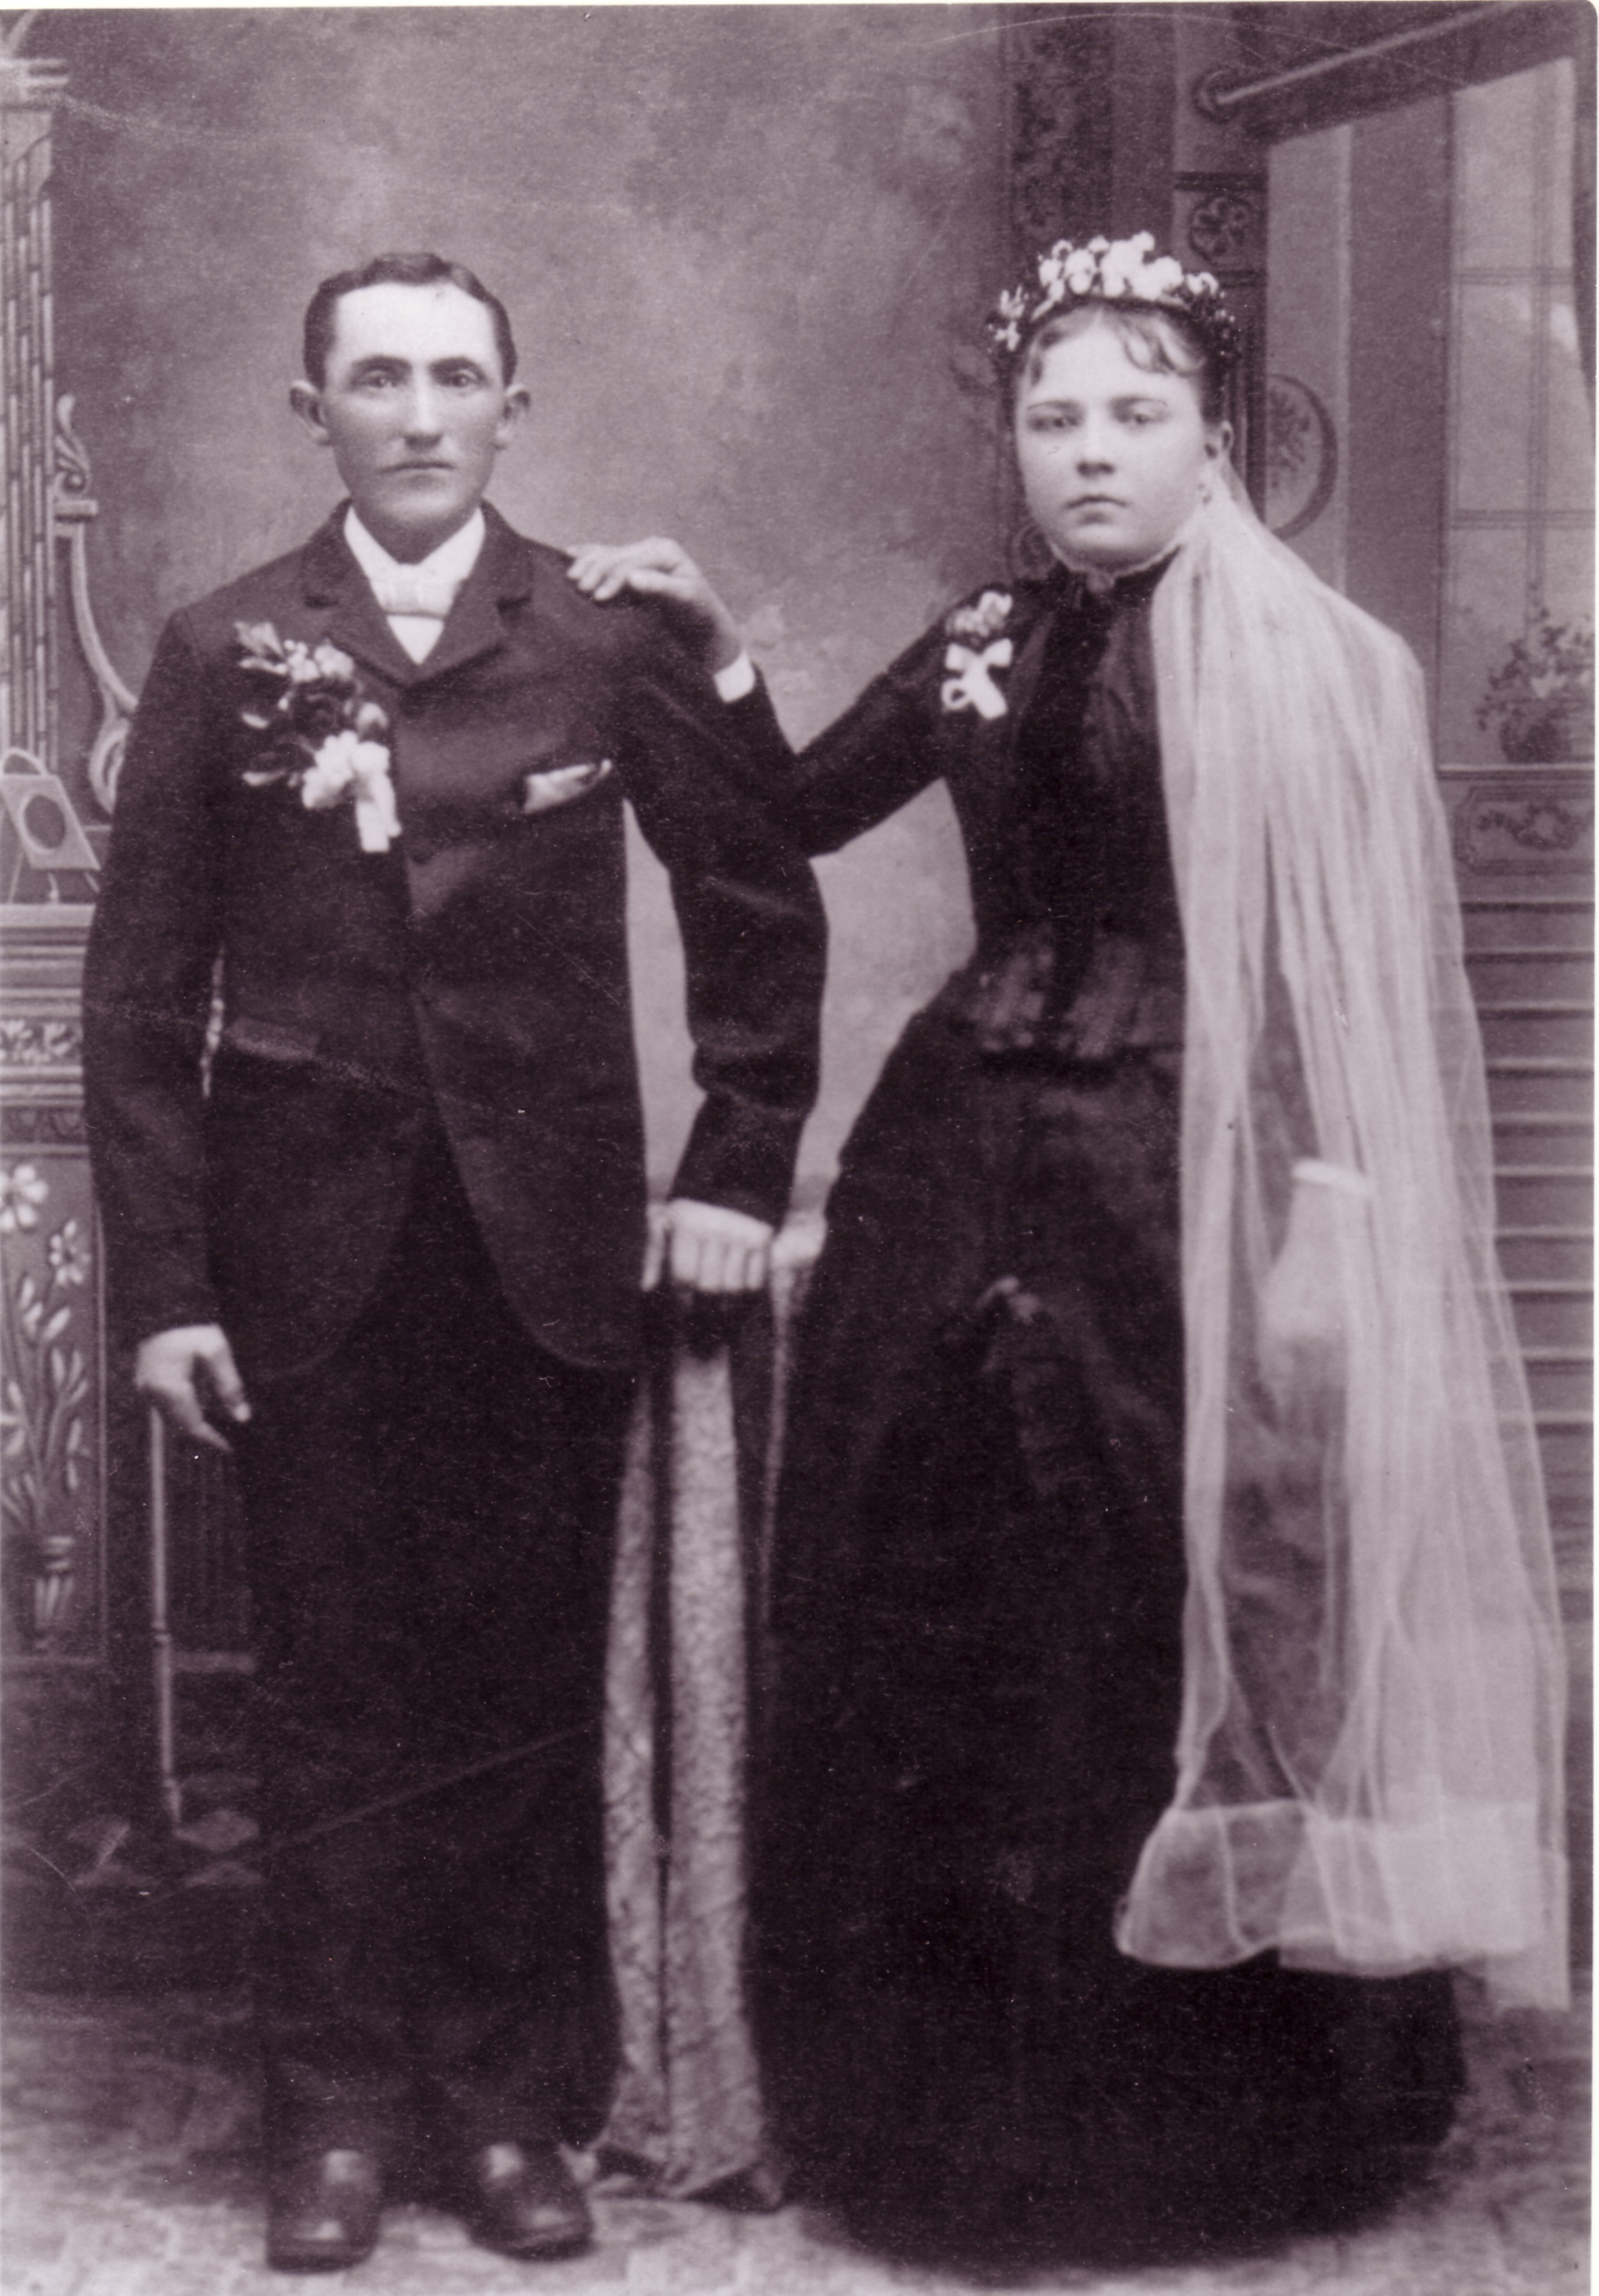 Freidrich Heinrich Eduard Beerman and Margaretha Magdalena Peters Beerman